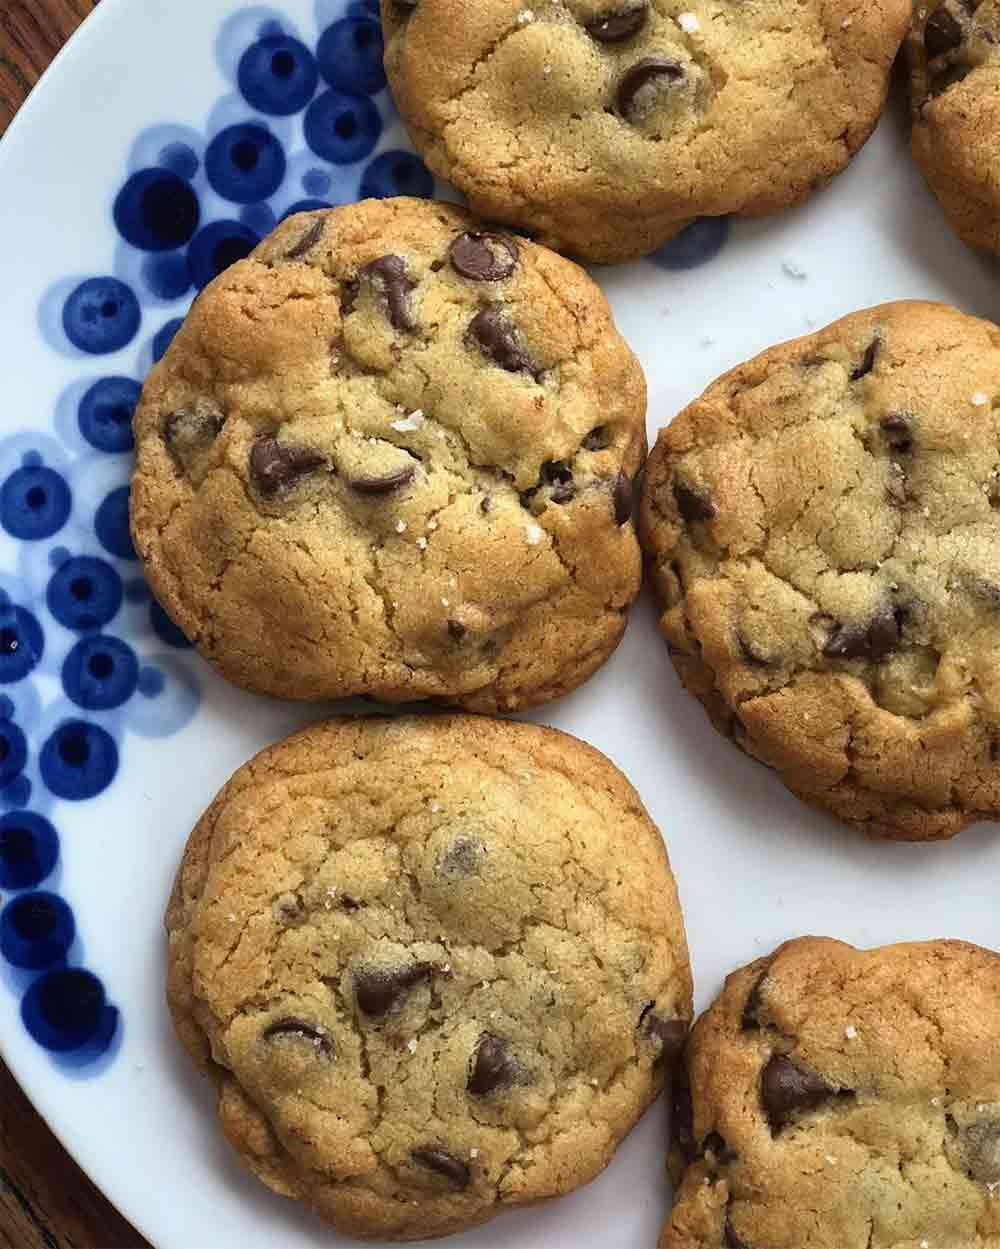 Six chocolate chip cookies on a blue and white plate